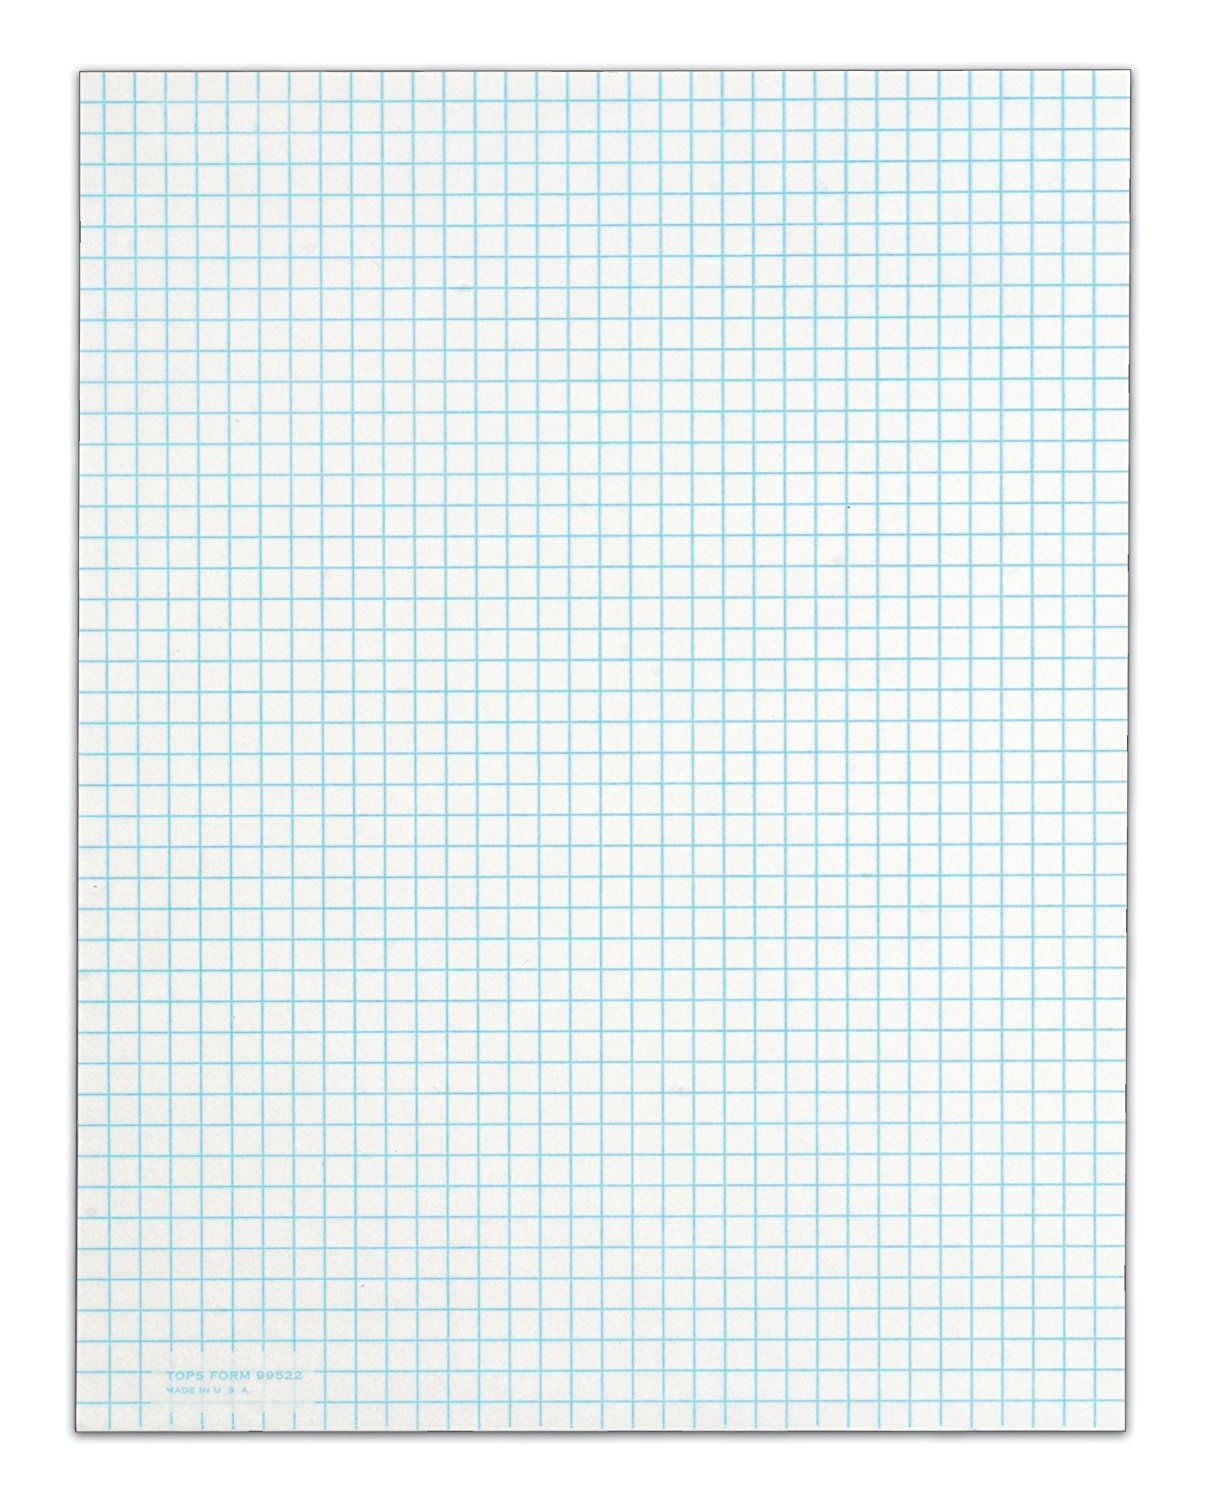 Graph Paper Template 8 5 X 11 Yahoo Image Search Results